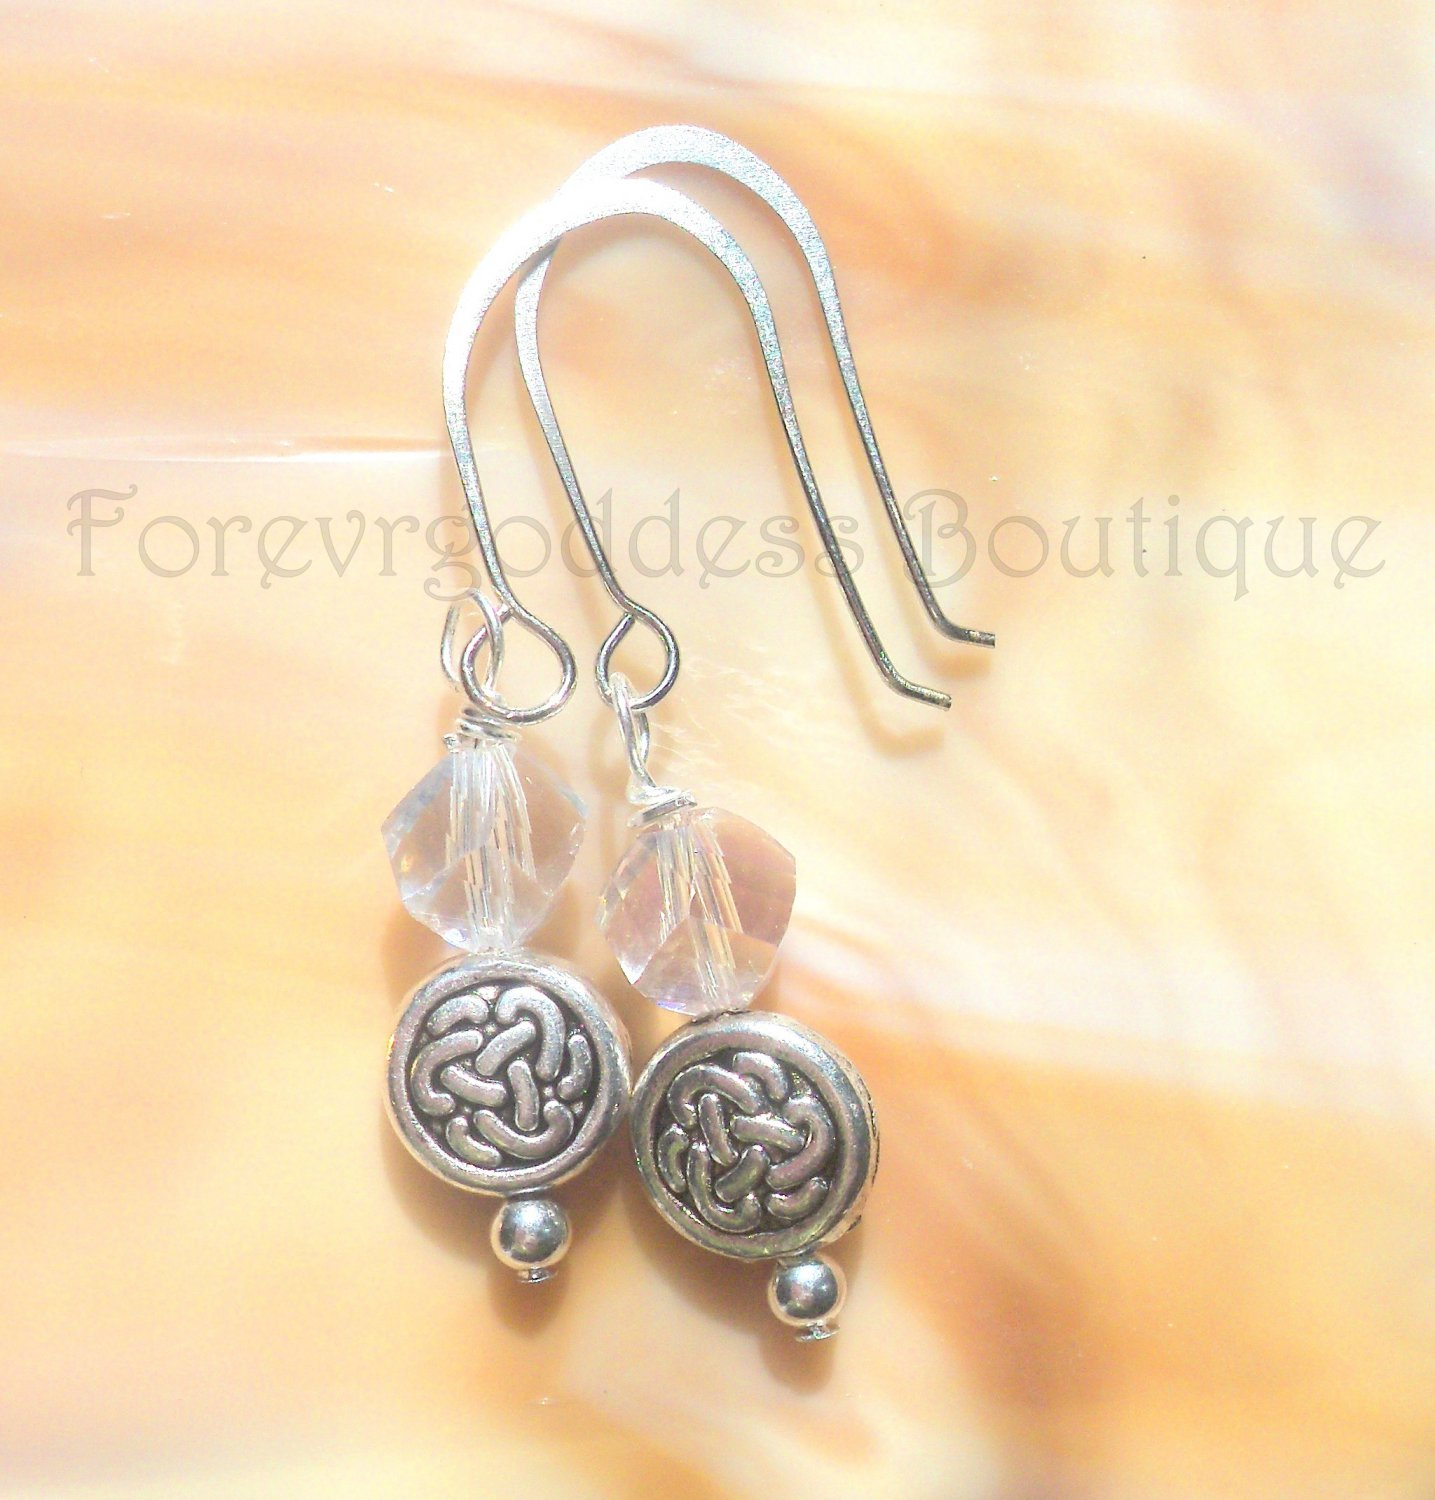 White crystals with Celtic Knots  earrings